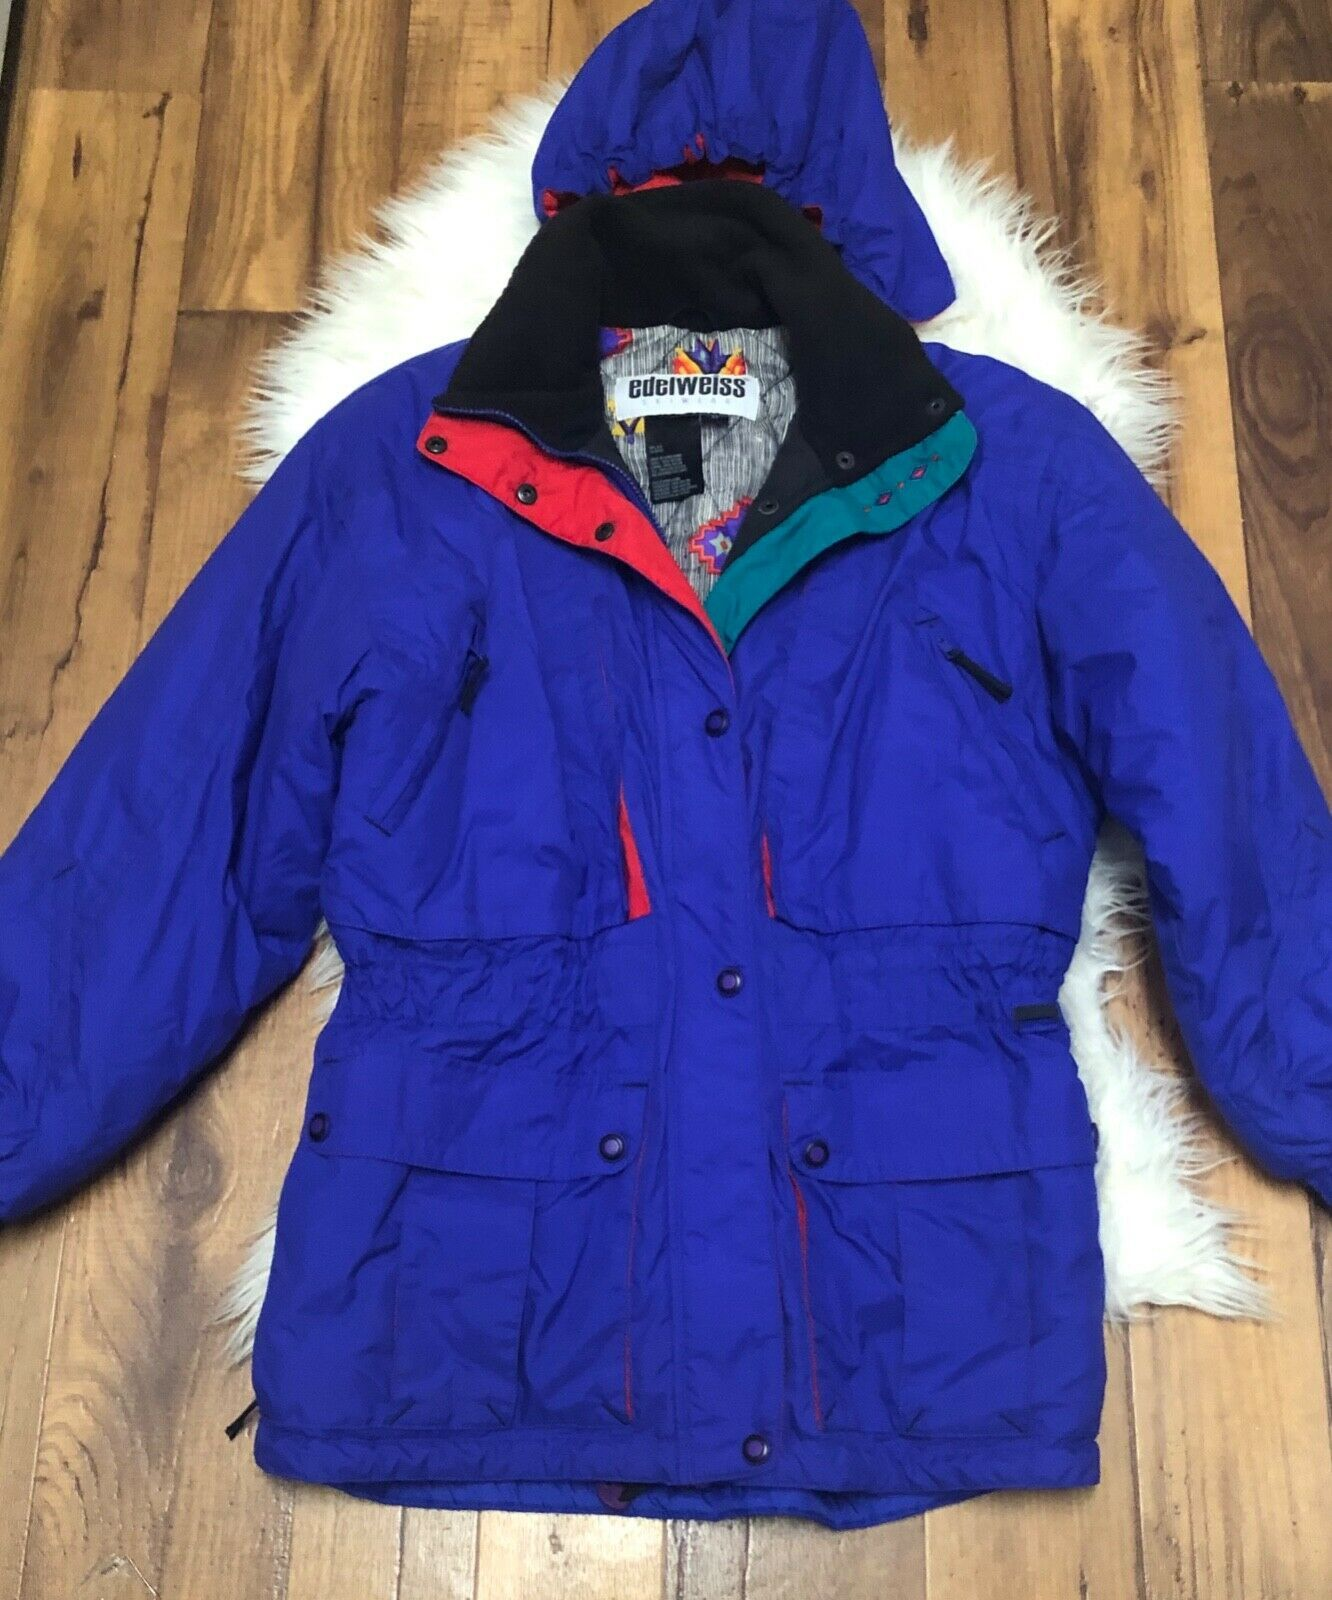 Edelweiss ski jacket VTG Ski Snowboarding Jacket Purple with hood 80 90s Mens L